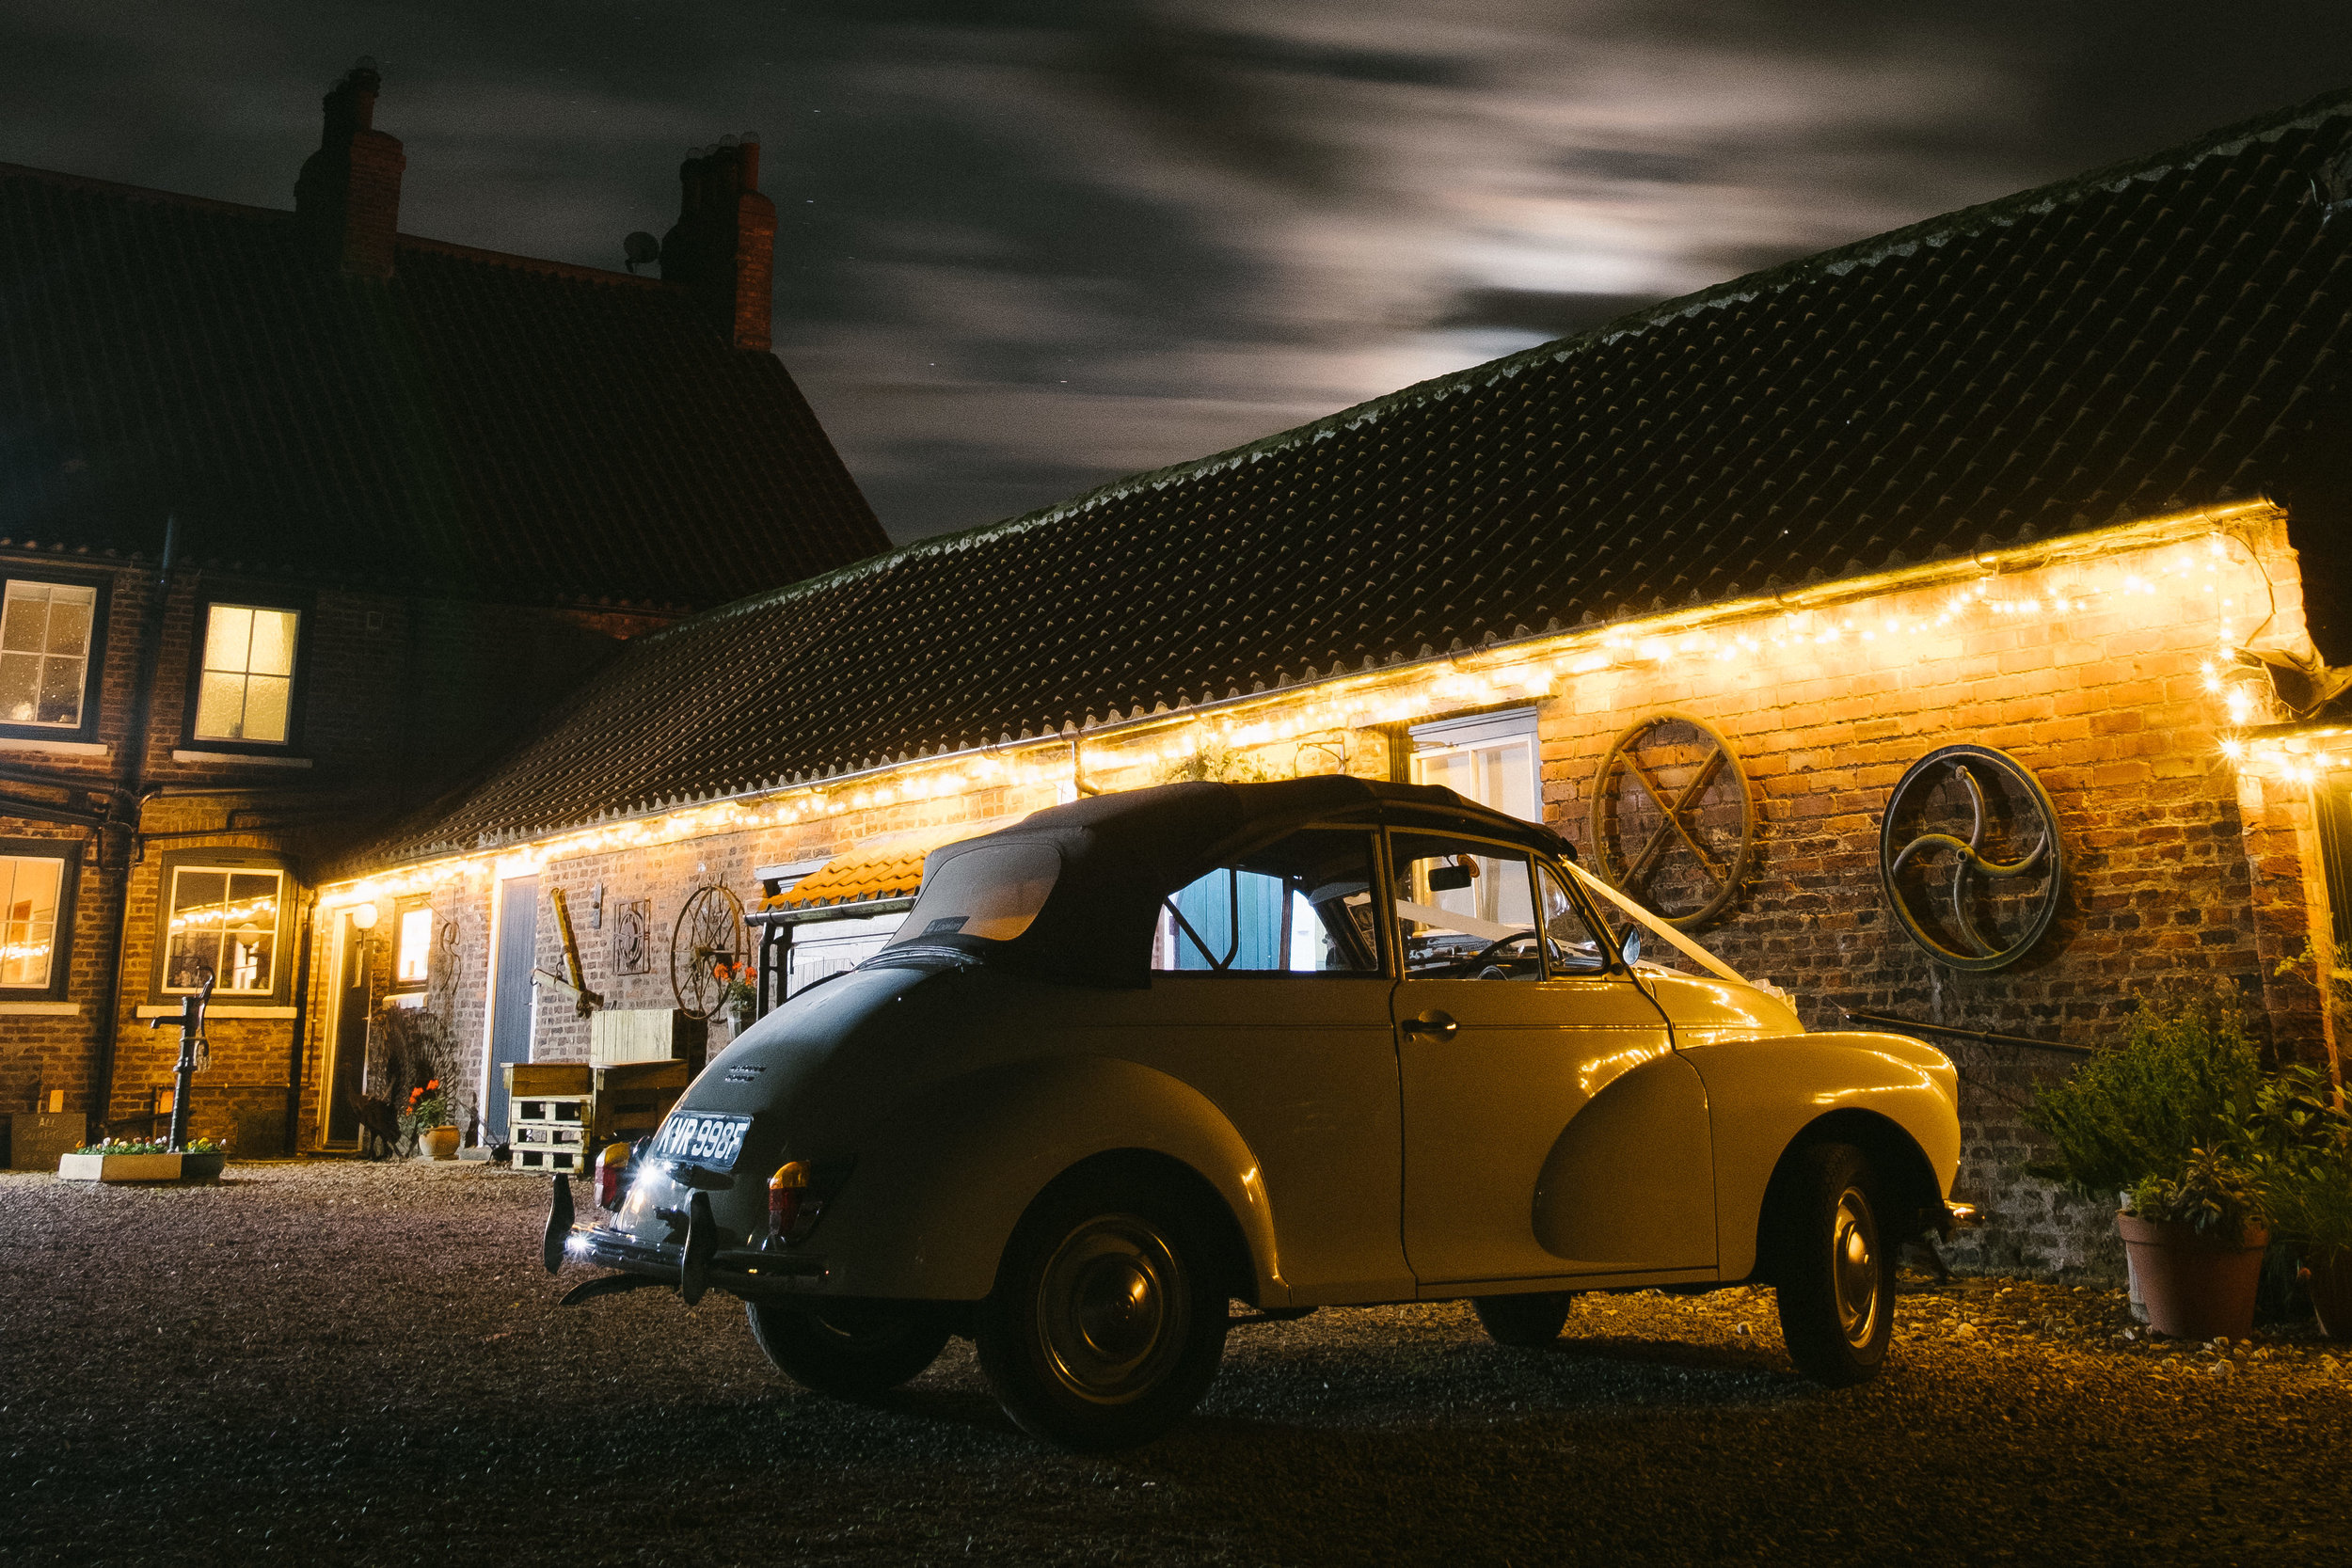 Brides car illuminated by golden lights at night on Dale Farm